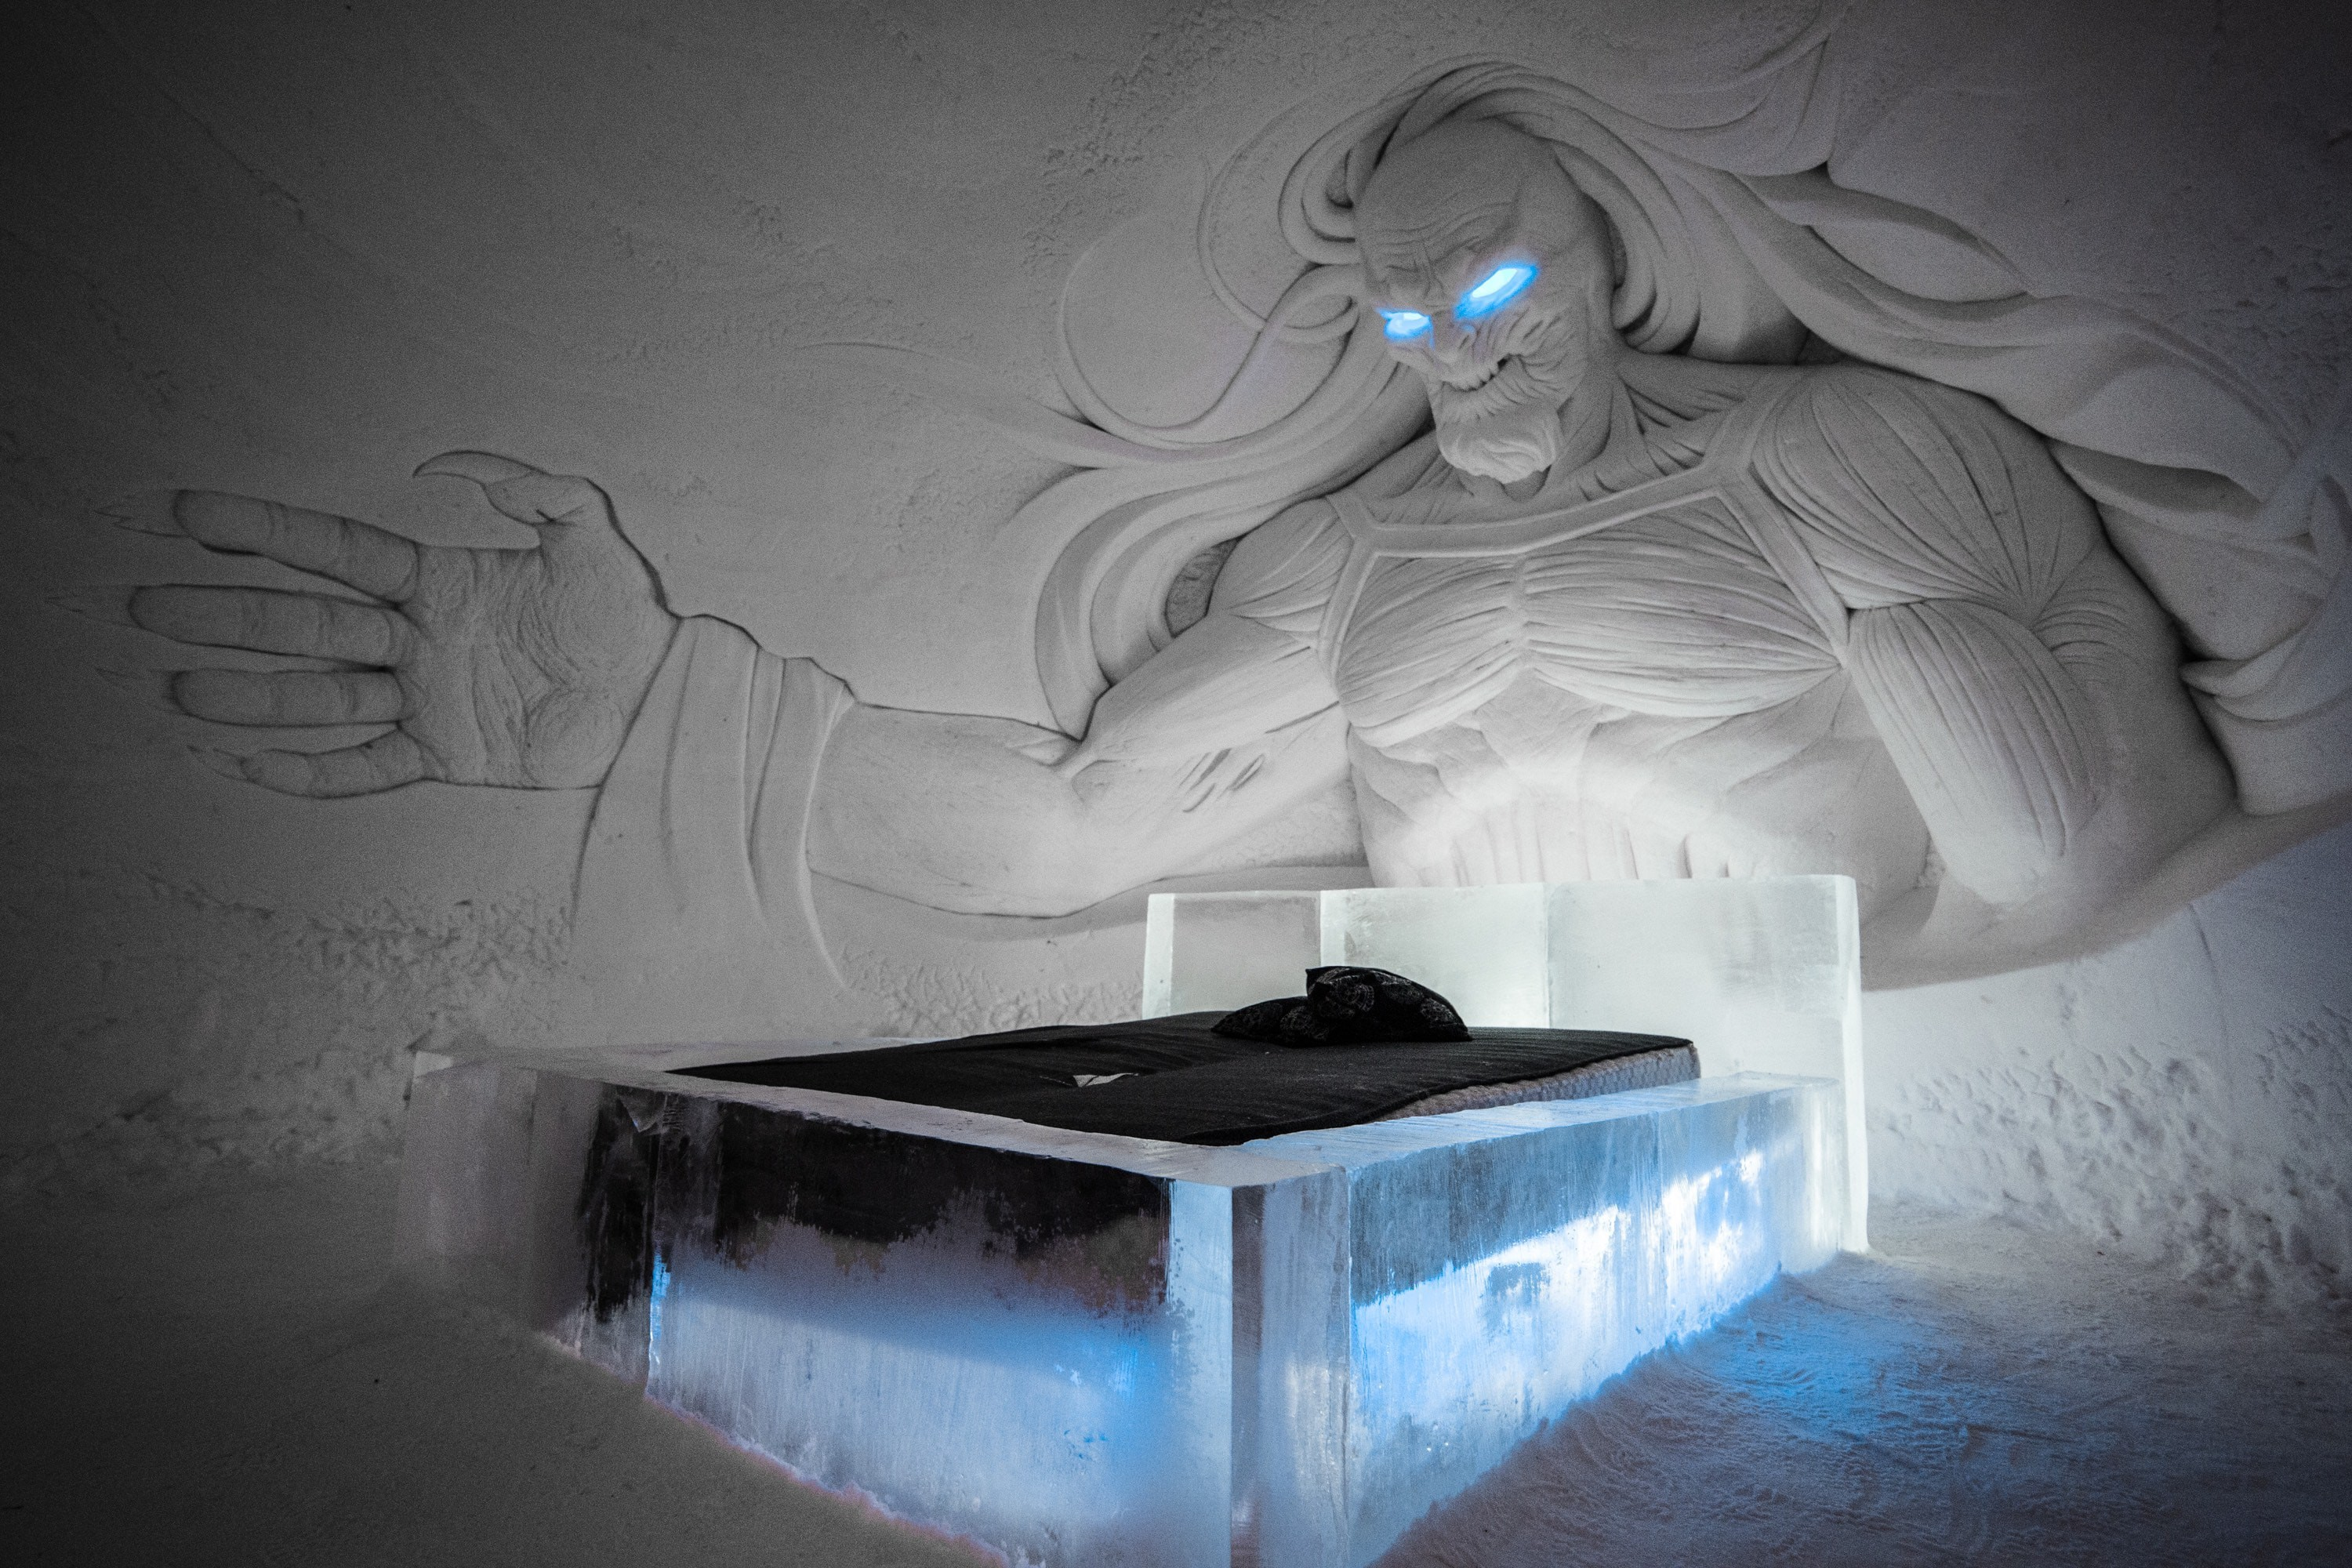 The Night King looms over guests as they sleep